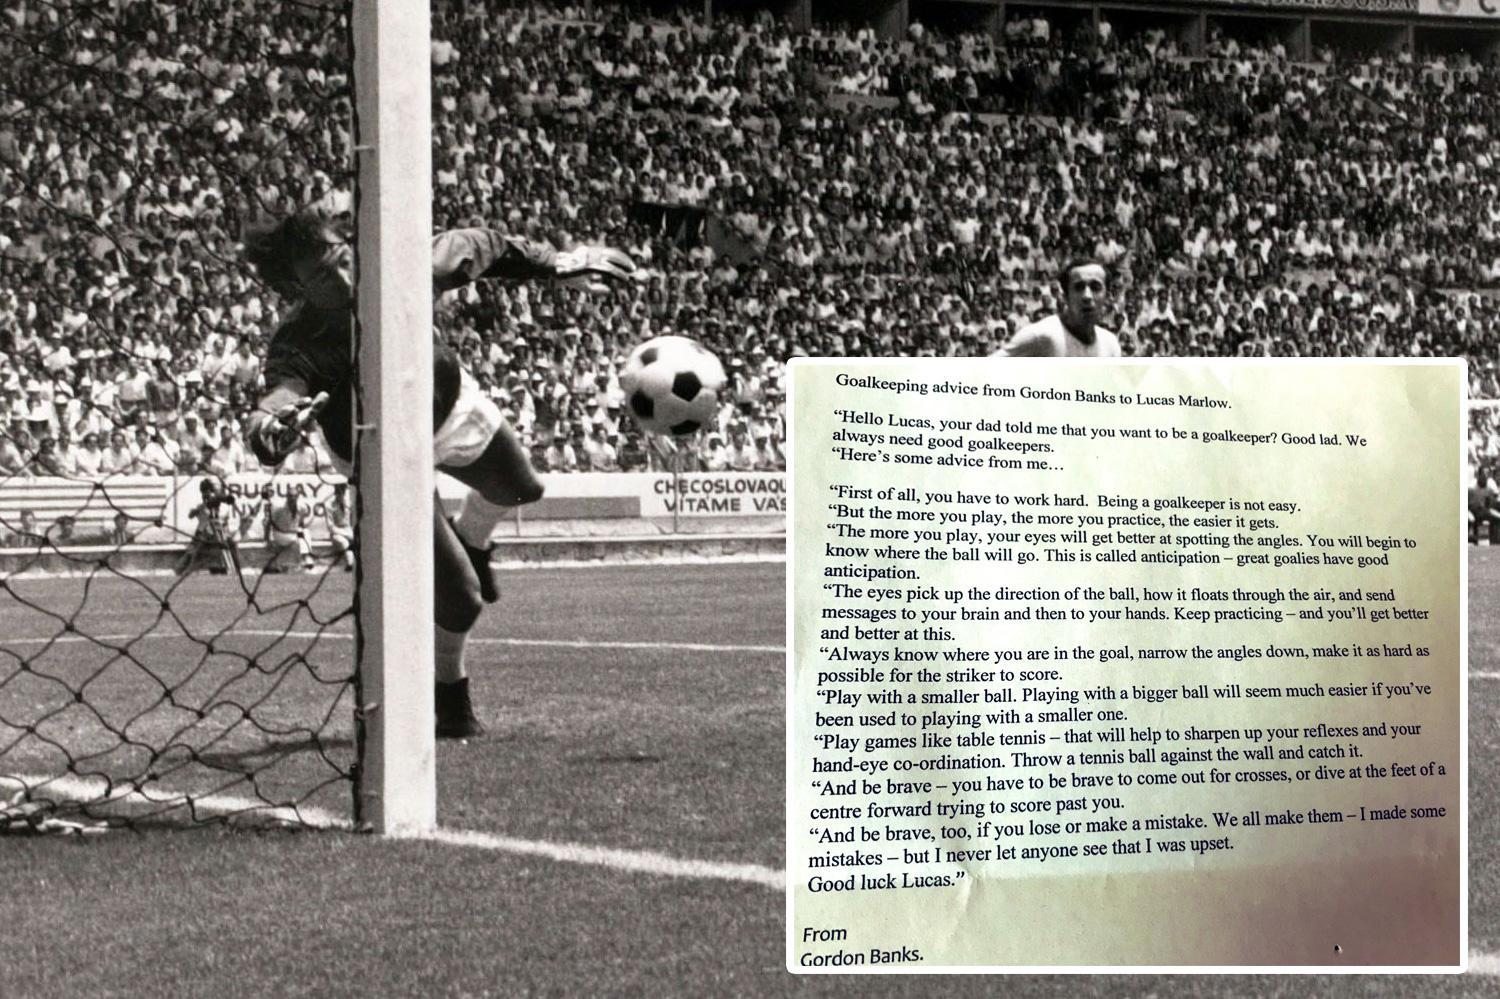 The incredible advice Gordon Banks gave when he was told of aspiring goalkeeper